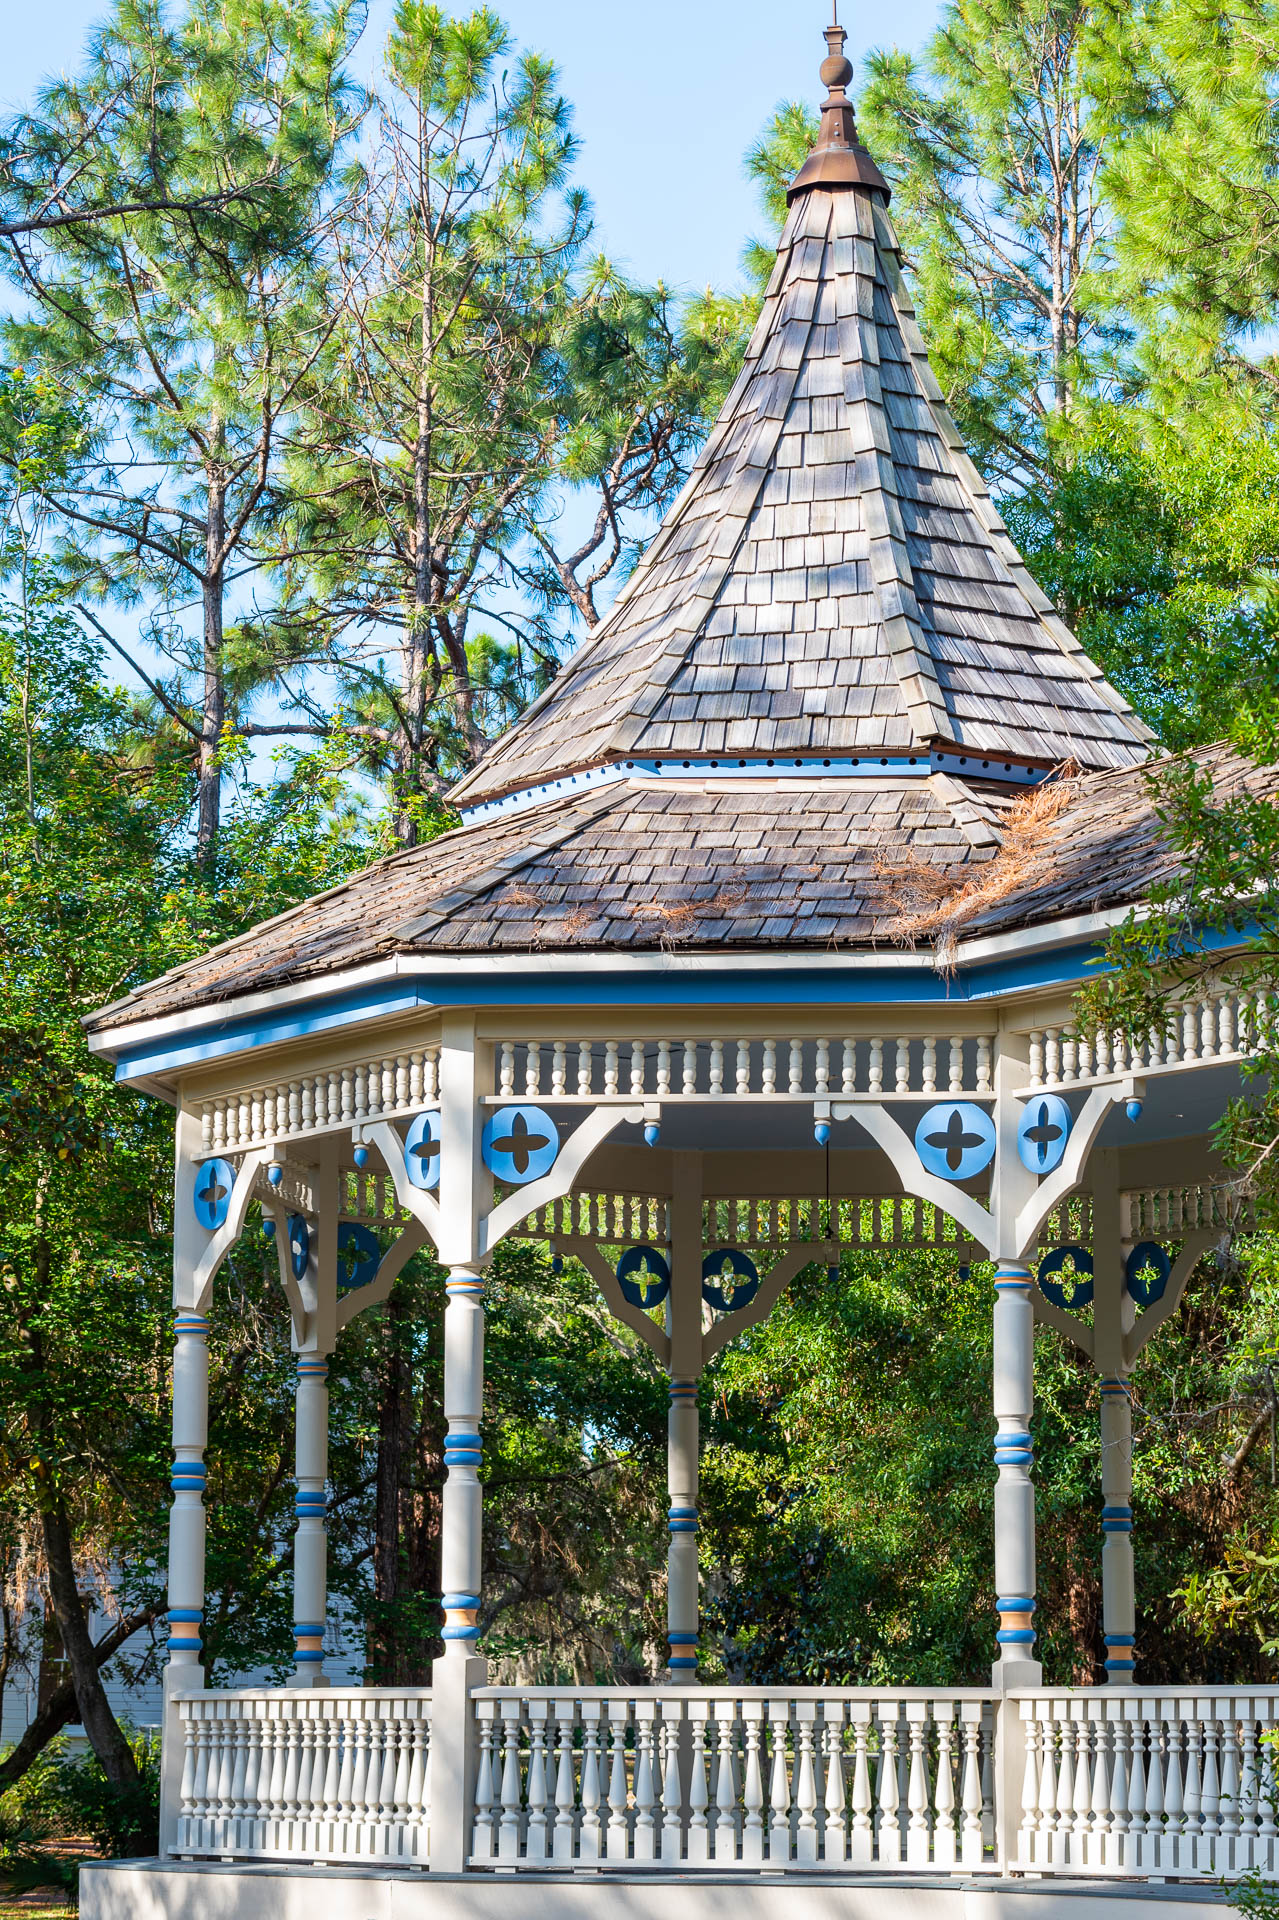 Williams Park Bandstand